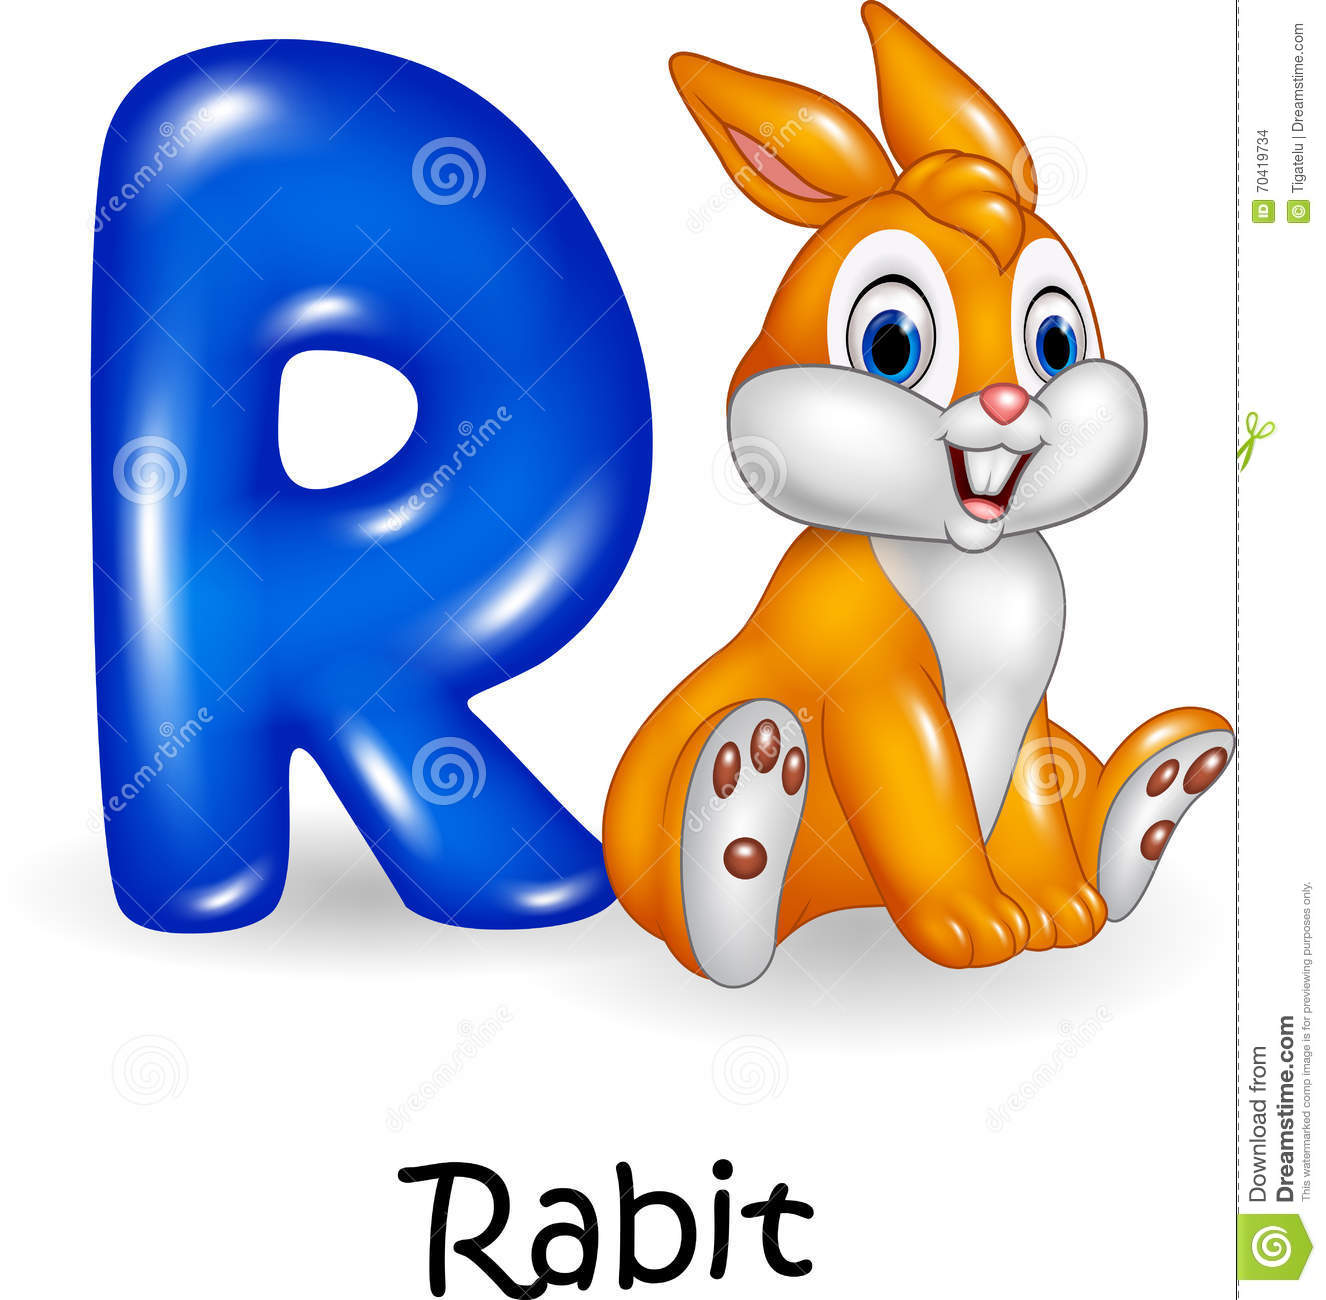 Cartoon Illustration Of R Letter For Rabbit Cartoon Stock